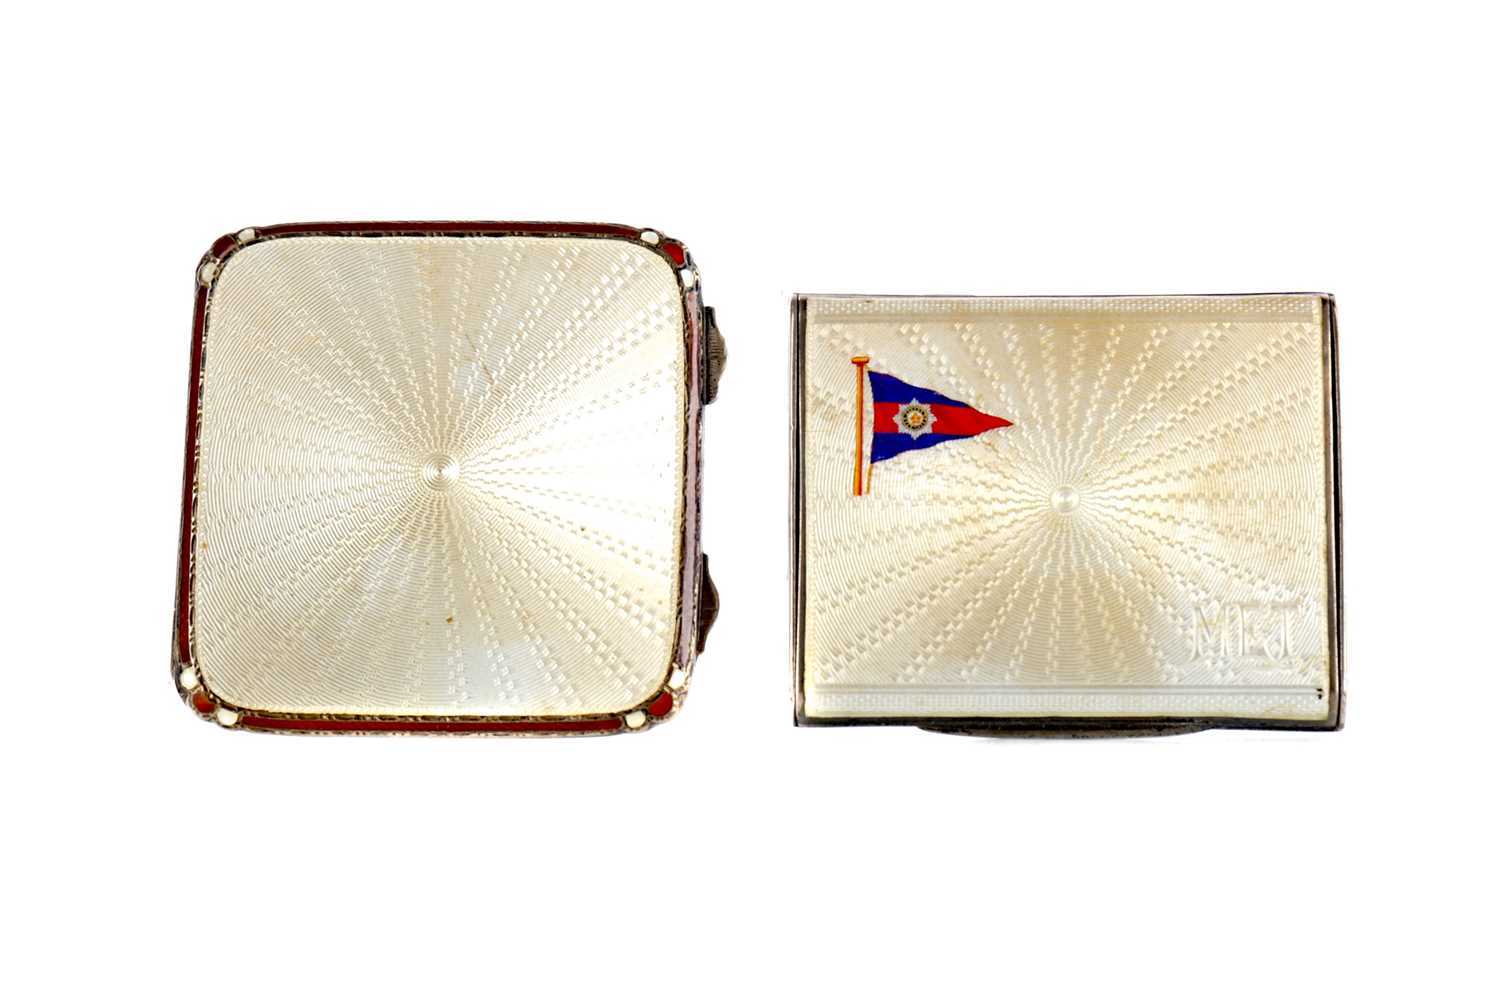 Lot 1718 - A SILVER AND GUILLOCHE ENAMEL SQUARE SHAPED COMPACT AND ANOTHER